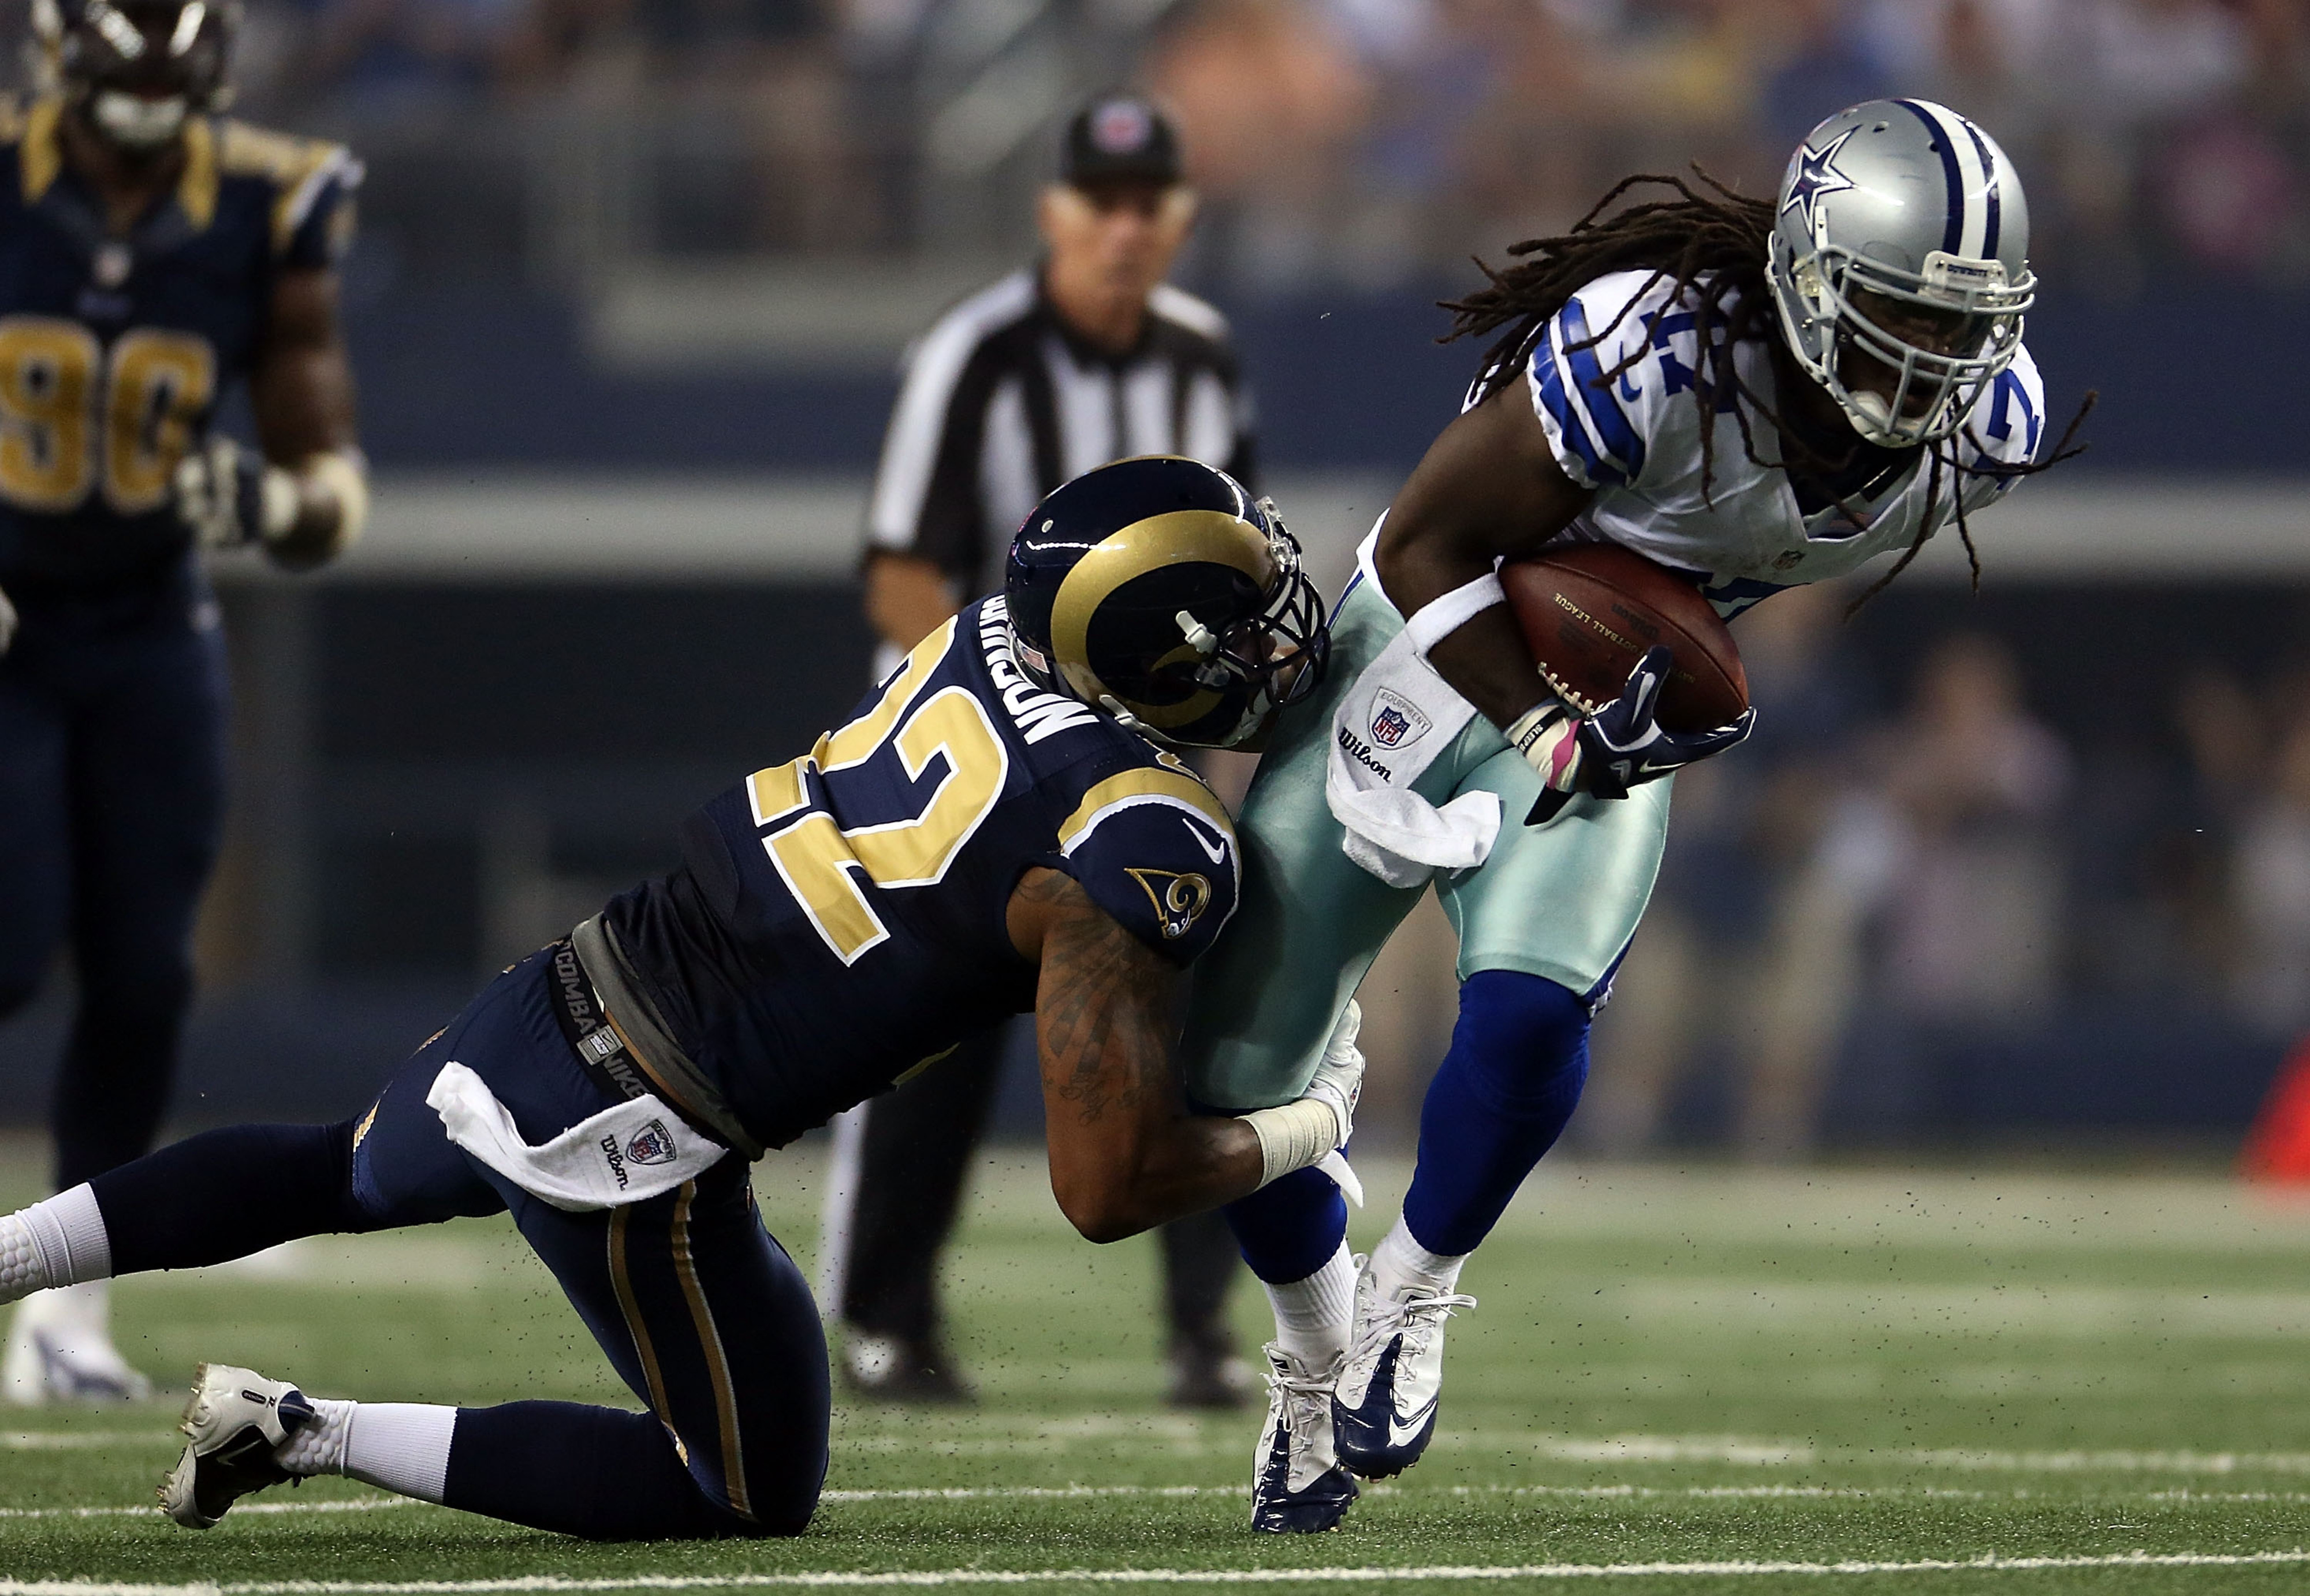 ARLINGTON, TX - AUGUST 25:   Dwayne Harris #17 of the Dallas Cowboys runs the ball against  Trumaine Johnson #22 of the St. Louis Rams at Cowboys Stadium on August 25, 2012 in Arlington, Texas.  (Photo by Ronald Martinez/Getty Images)